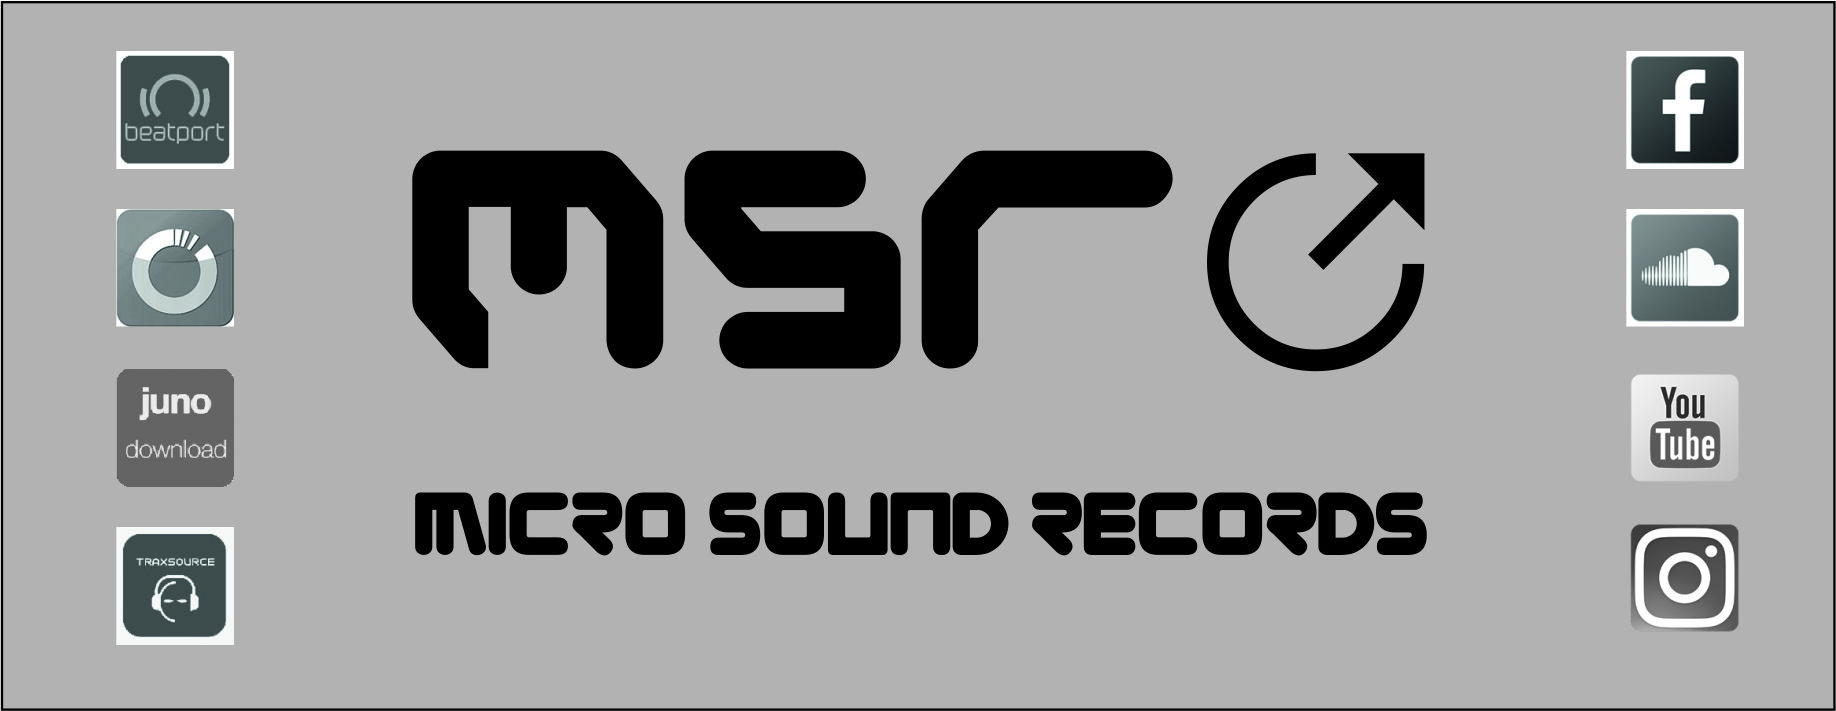 MicroSoundRecords